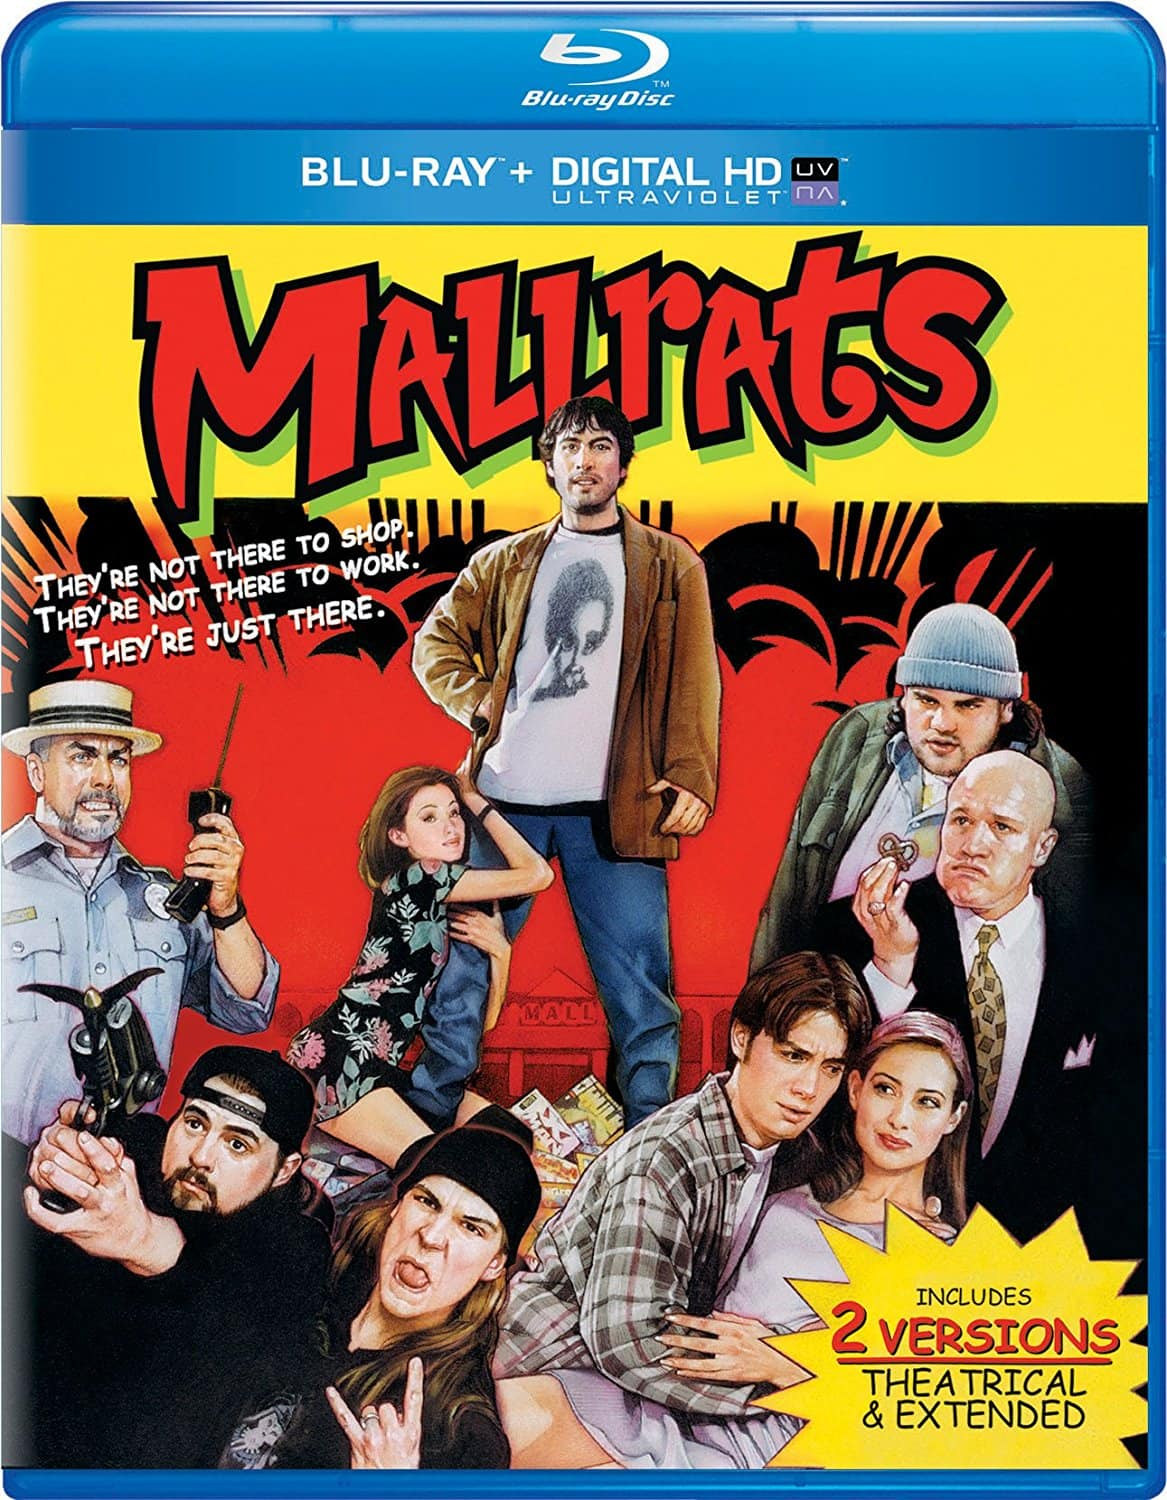 Blu-Ray Movies + Digital HD: Mallrats, Rush, The Breakfast Club: 30th Anniv. Edition, or Dracula Untold $4.99 & More + Free In-Store Pickup via Fry's